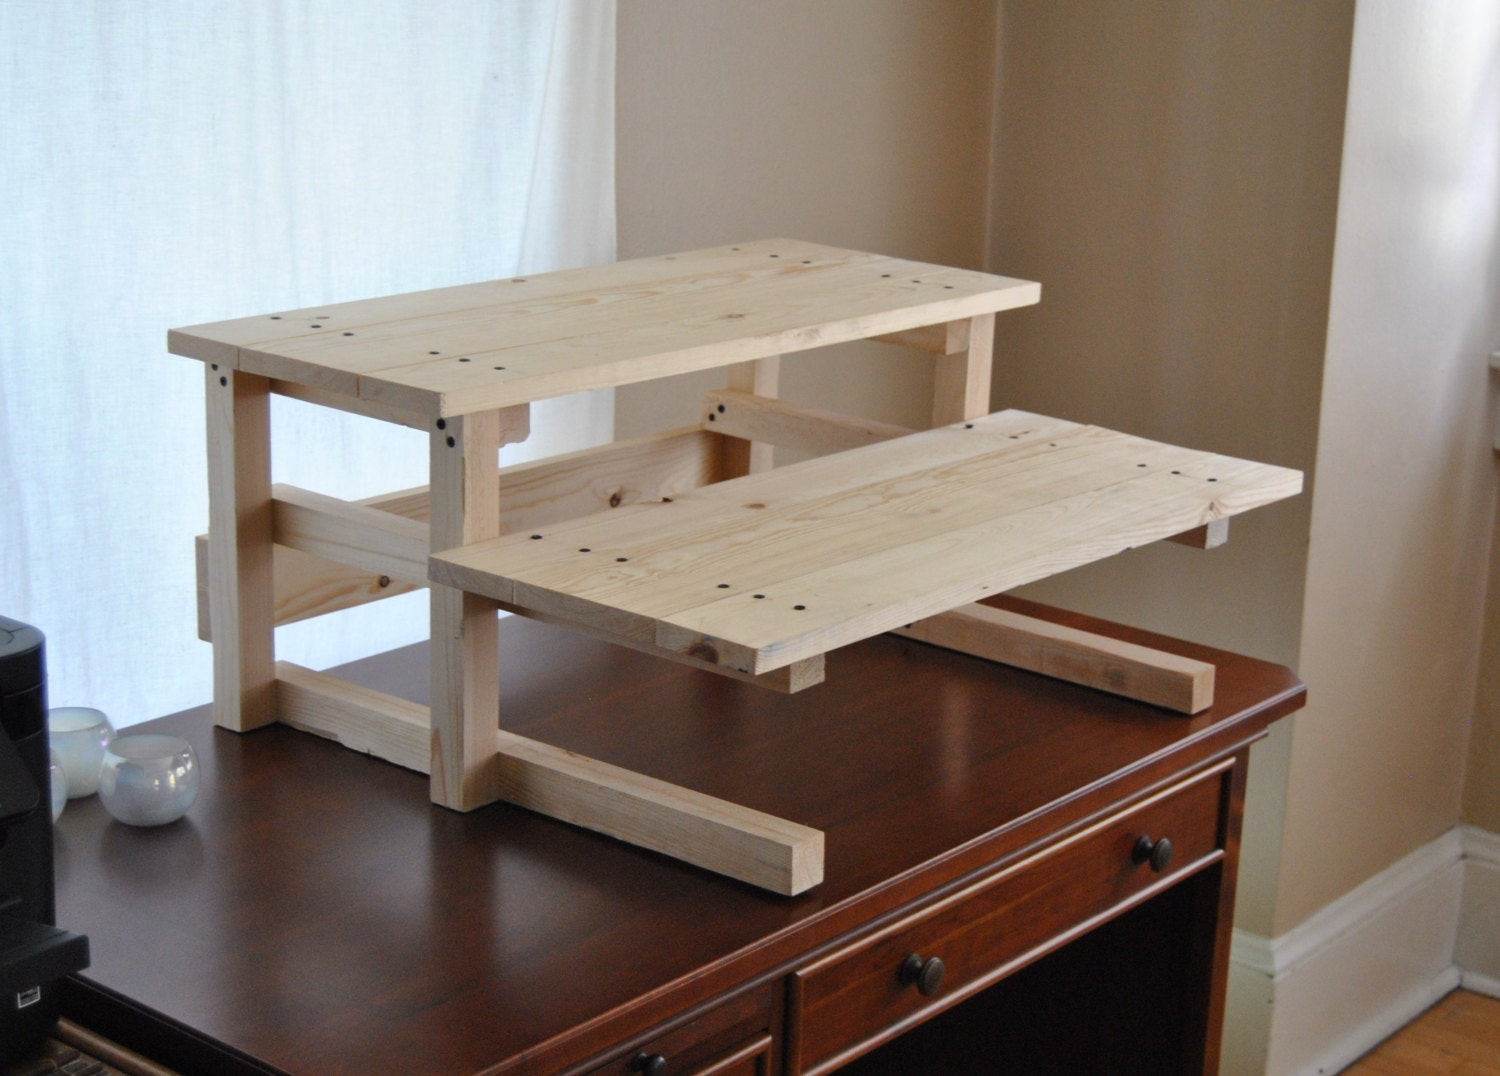 Best ideas about Standing Desks DIY . Save or Pin DIY Project Plan Two Monitor Standing puter Desk DIY Now.